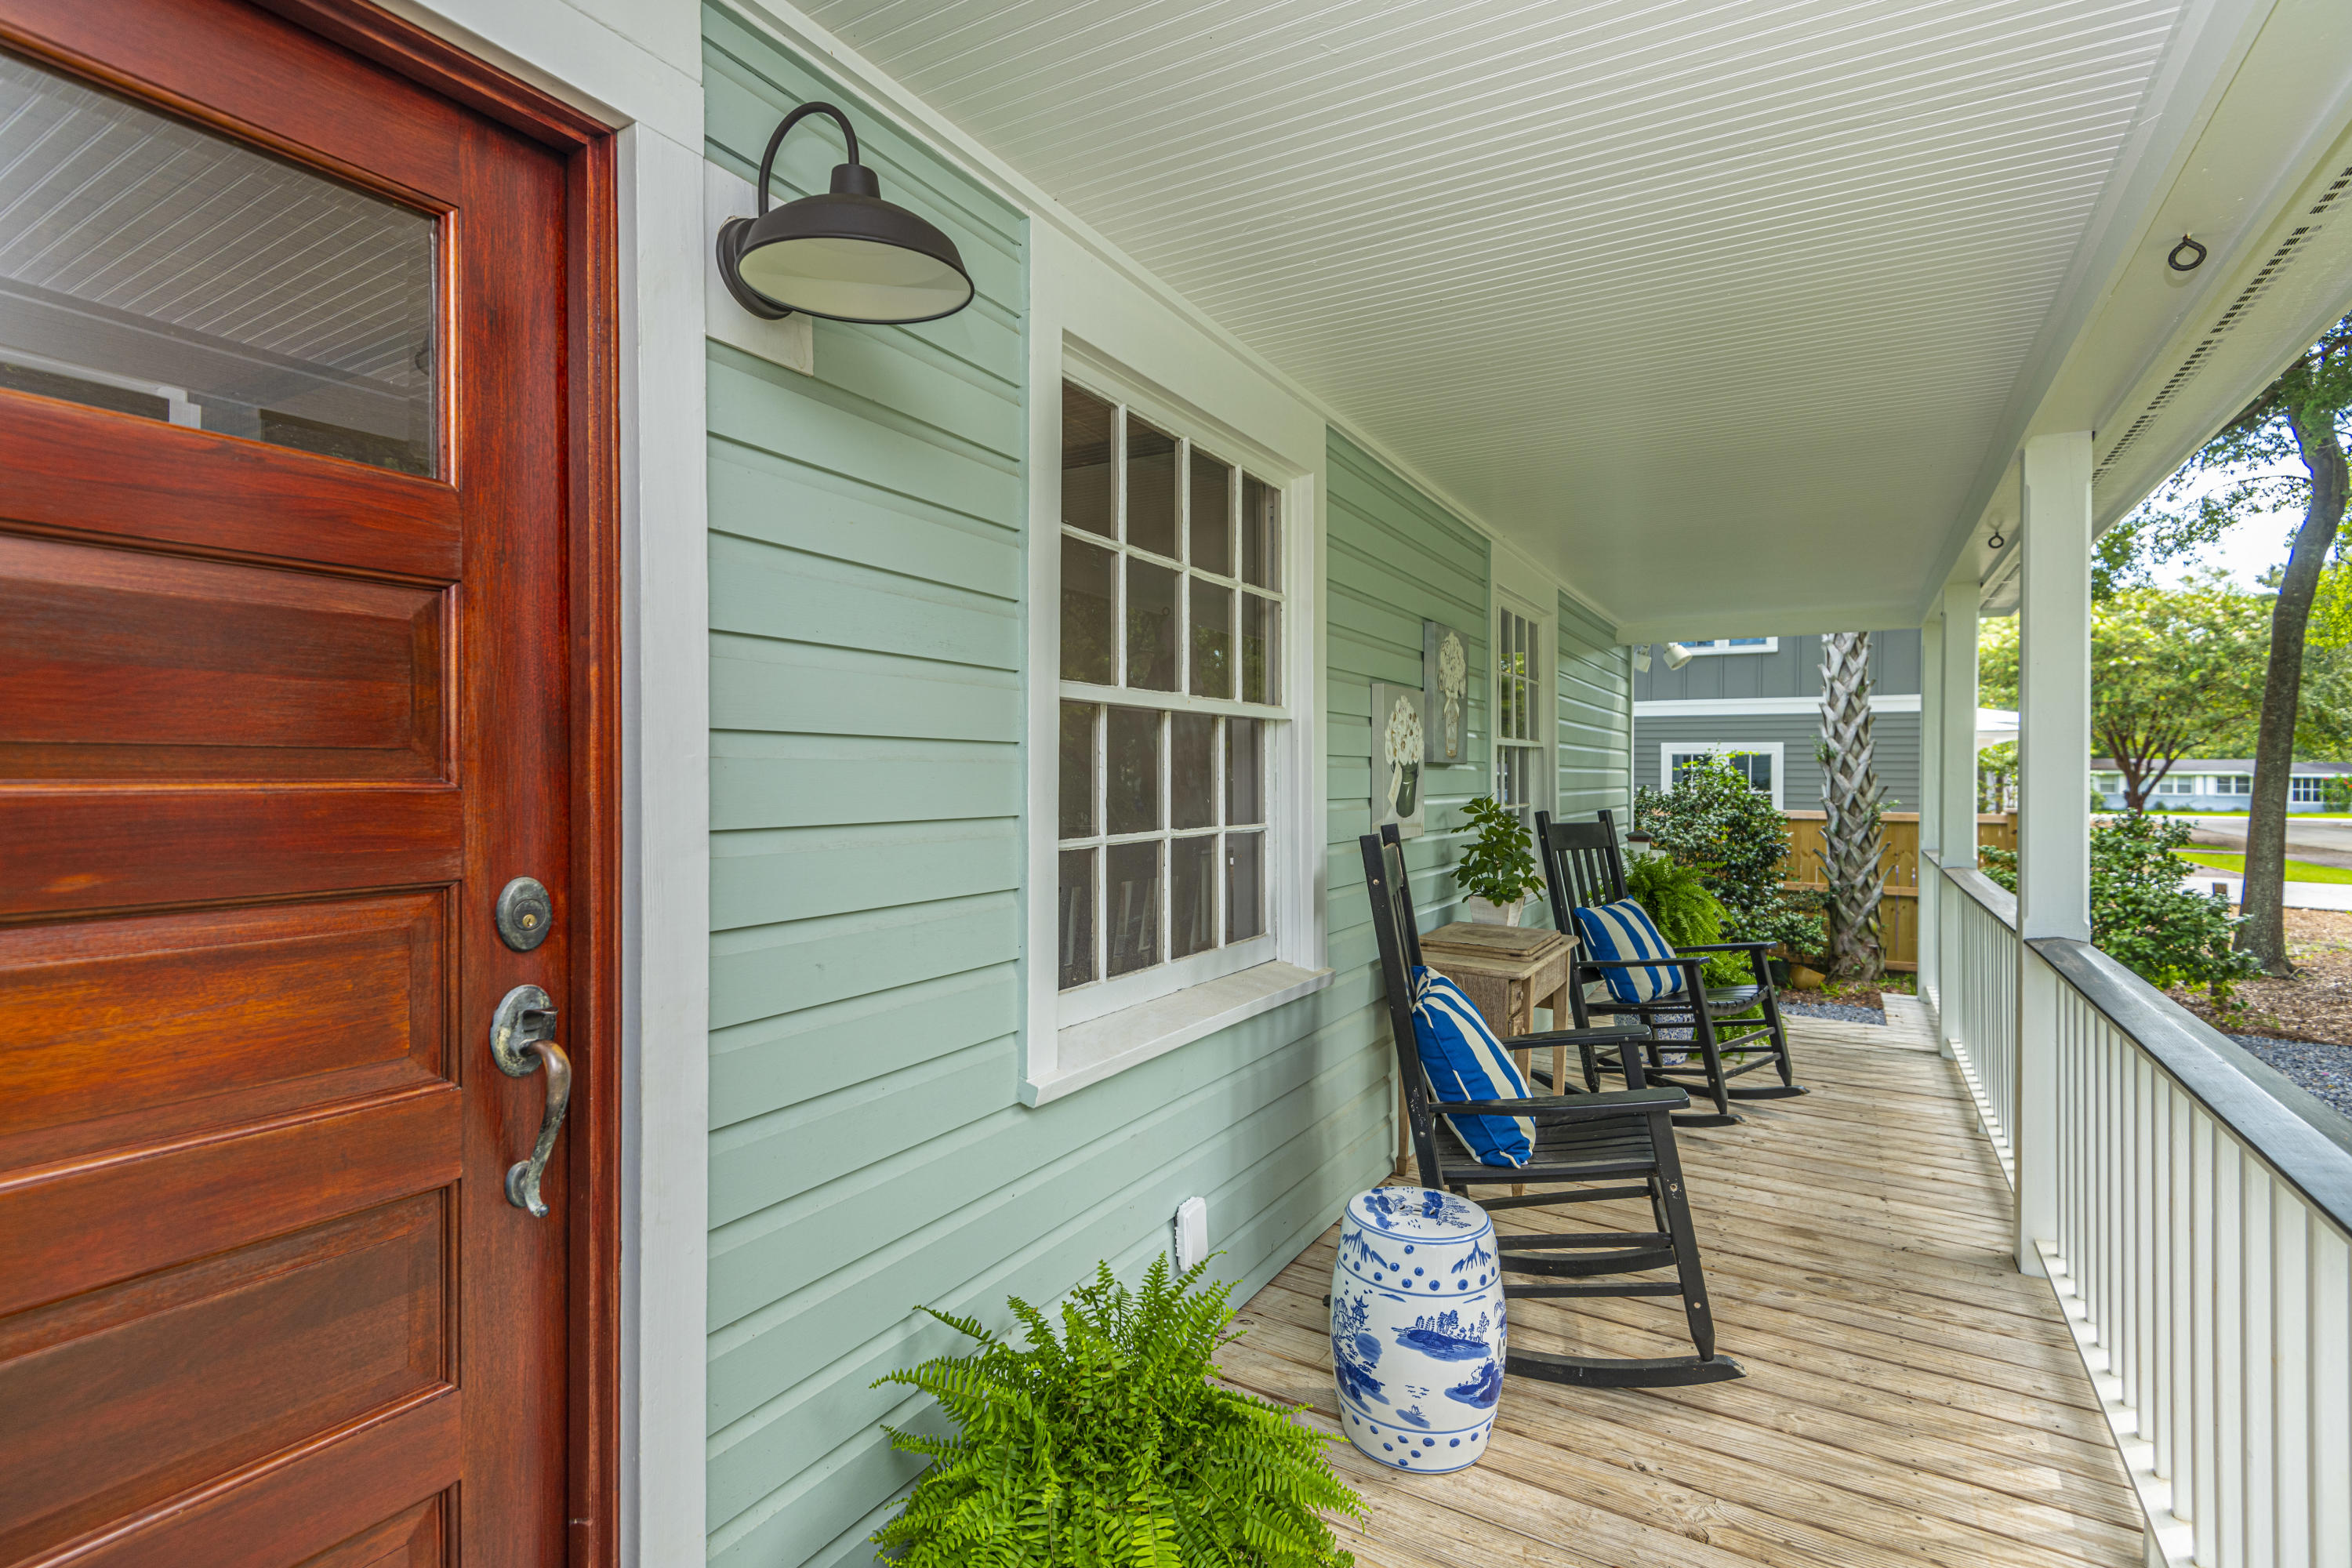 Old Mt Pleasant Homes For Sale - 674 Ferry, Mount Pleasant, SC - 23